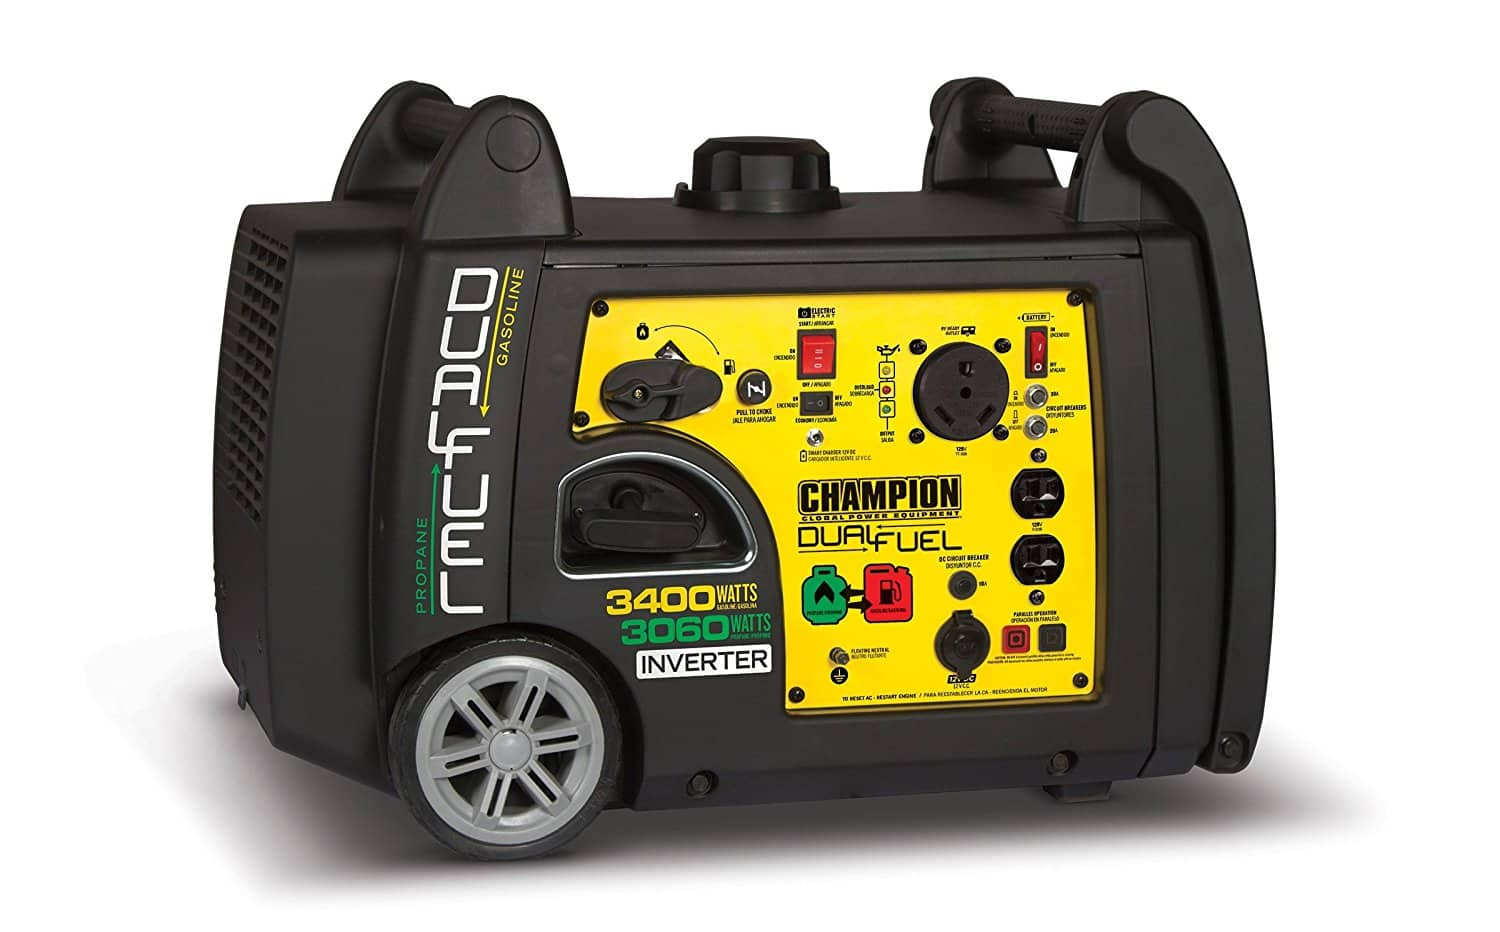 Good prices on generators with free shipping / no tax and 11% off at Acme Tools $916